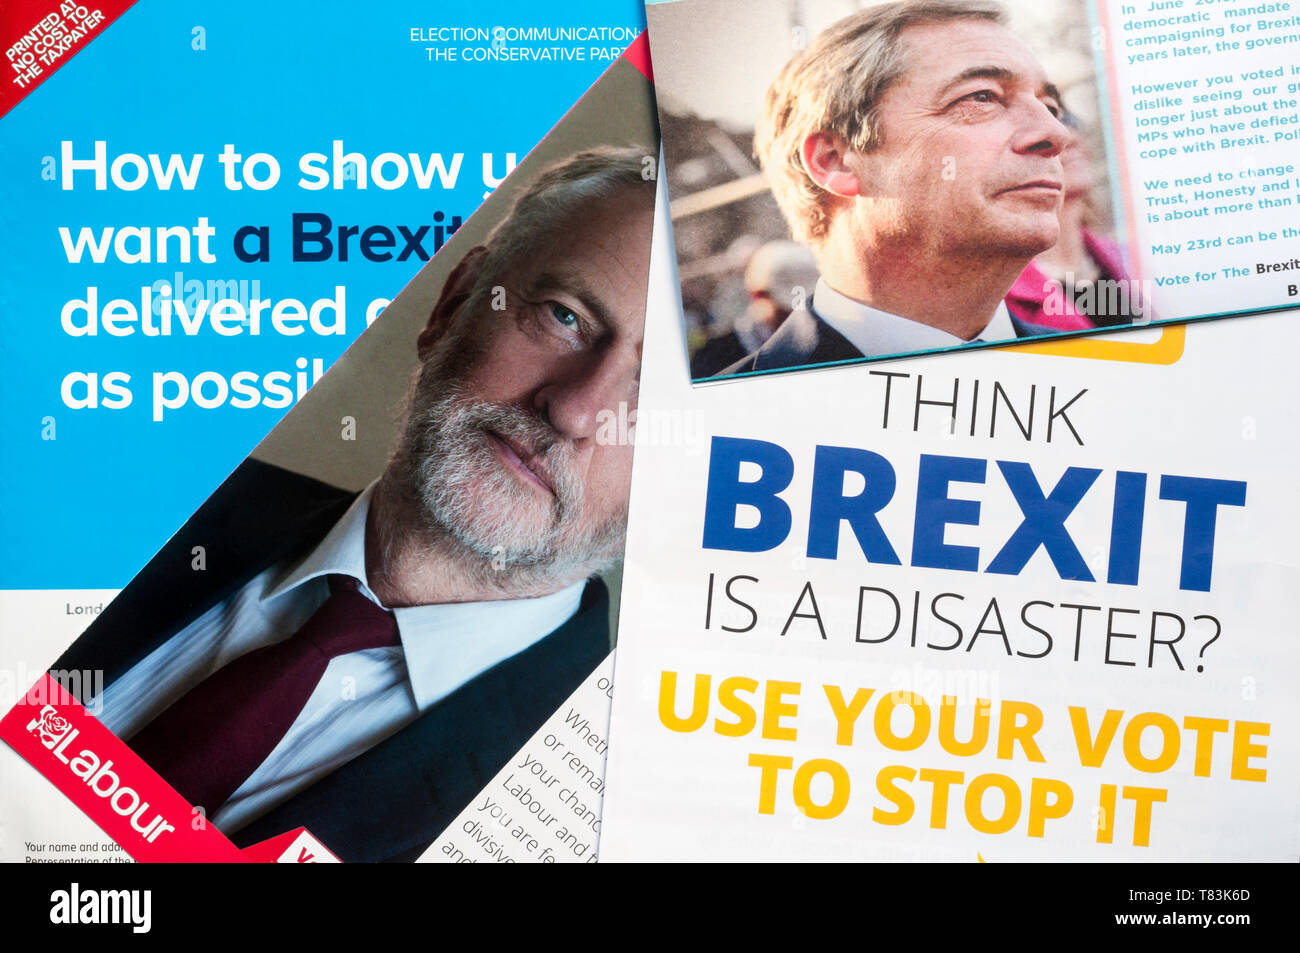 A selection of European Elections 2019 leaflets from the Labour, Liberal Democrat, Conservative and Brexit parties. - Stock Image